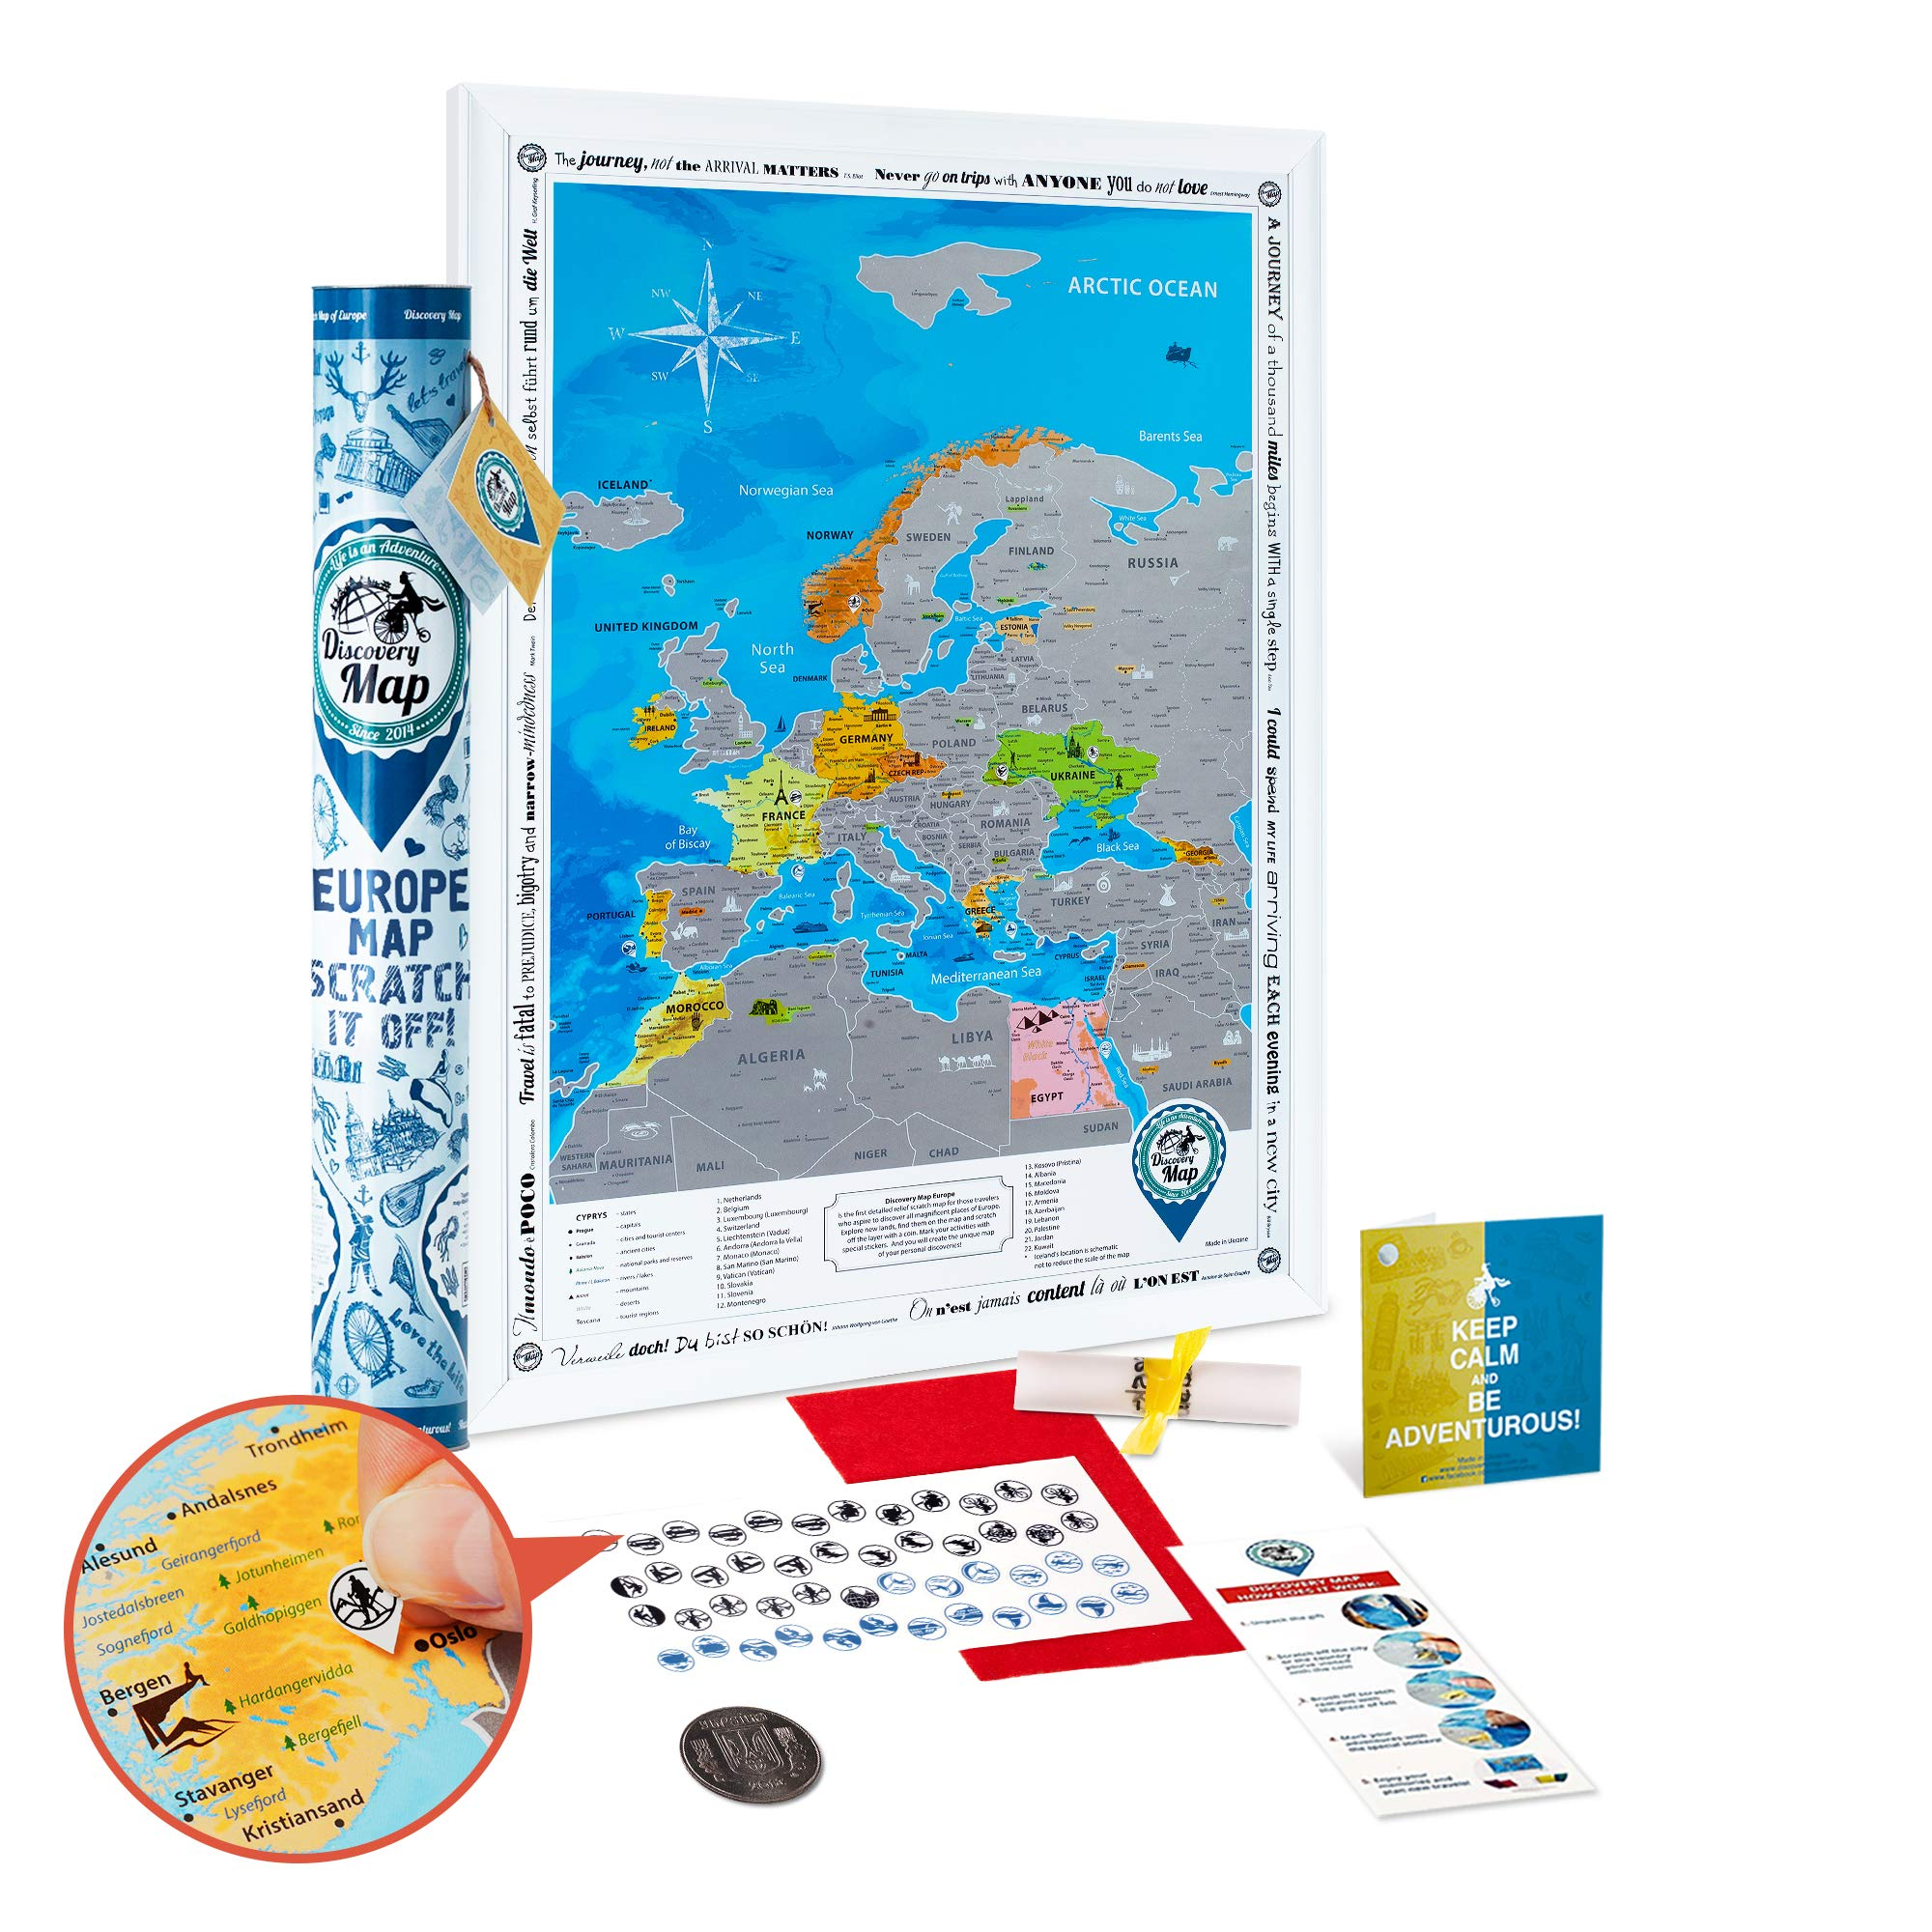 Scratch off Europe Map Poster - Large Detailed Europe Wall Map Scratch off 19x27 - Premium Silver Foil Europe Travel Map Scratch off - Discovery Map